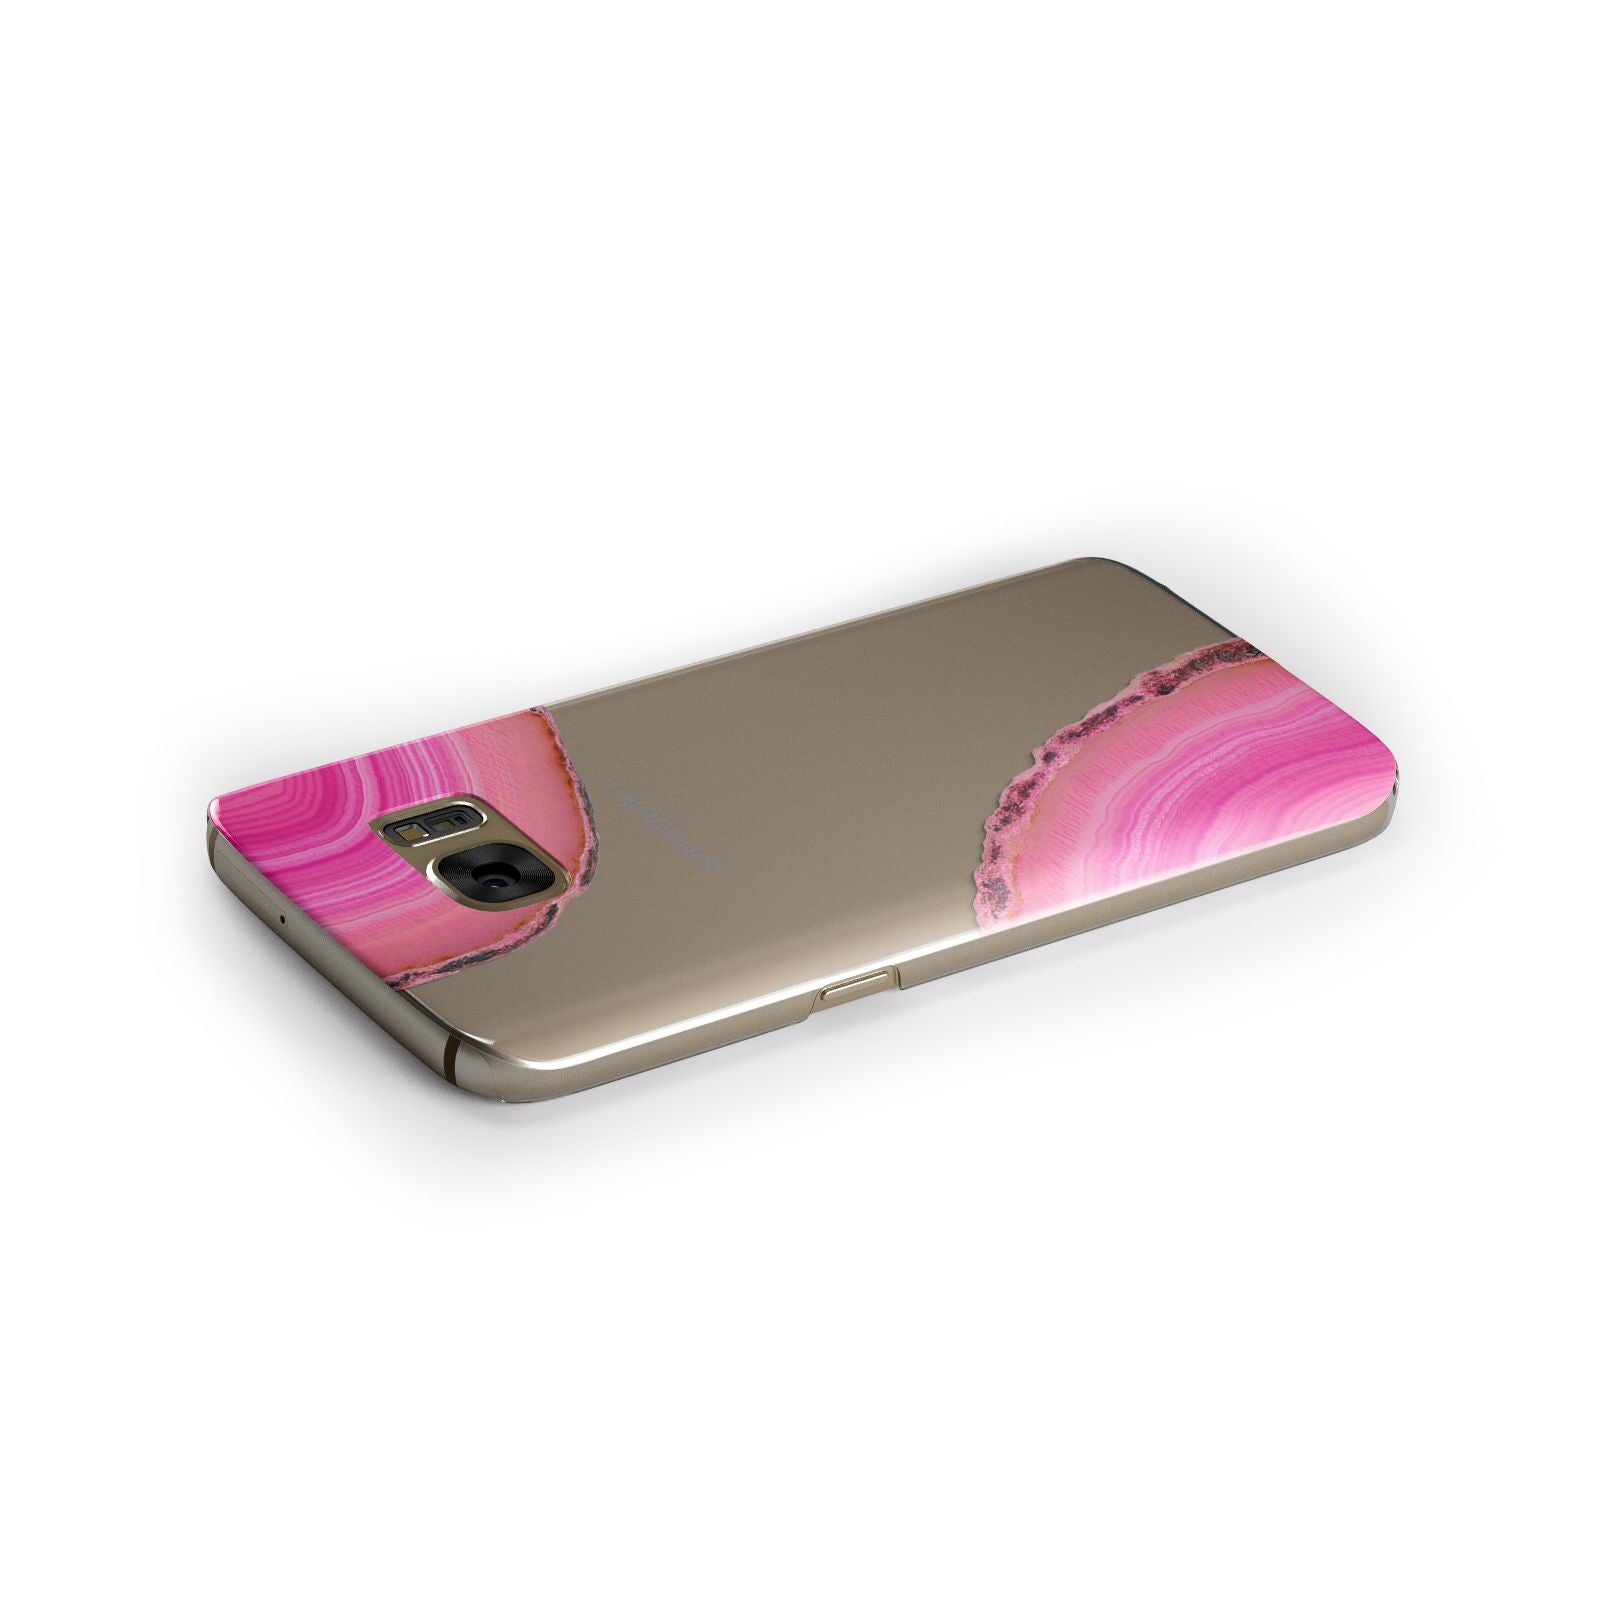 Agate Bright Pink Samsung Galaxy Case Side Close Up